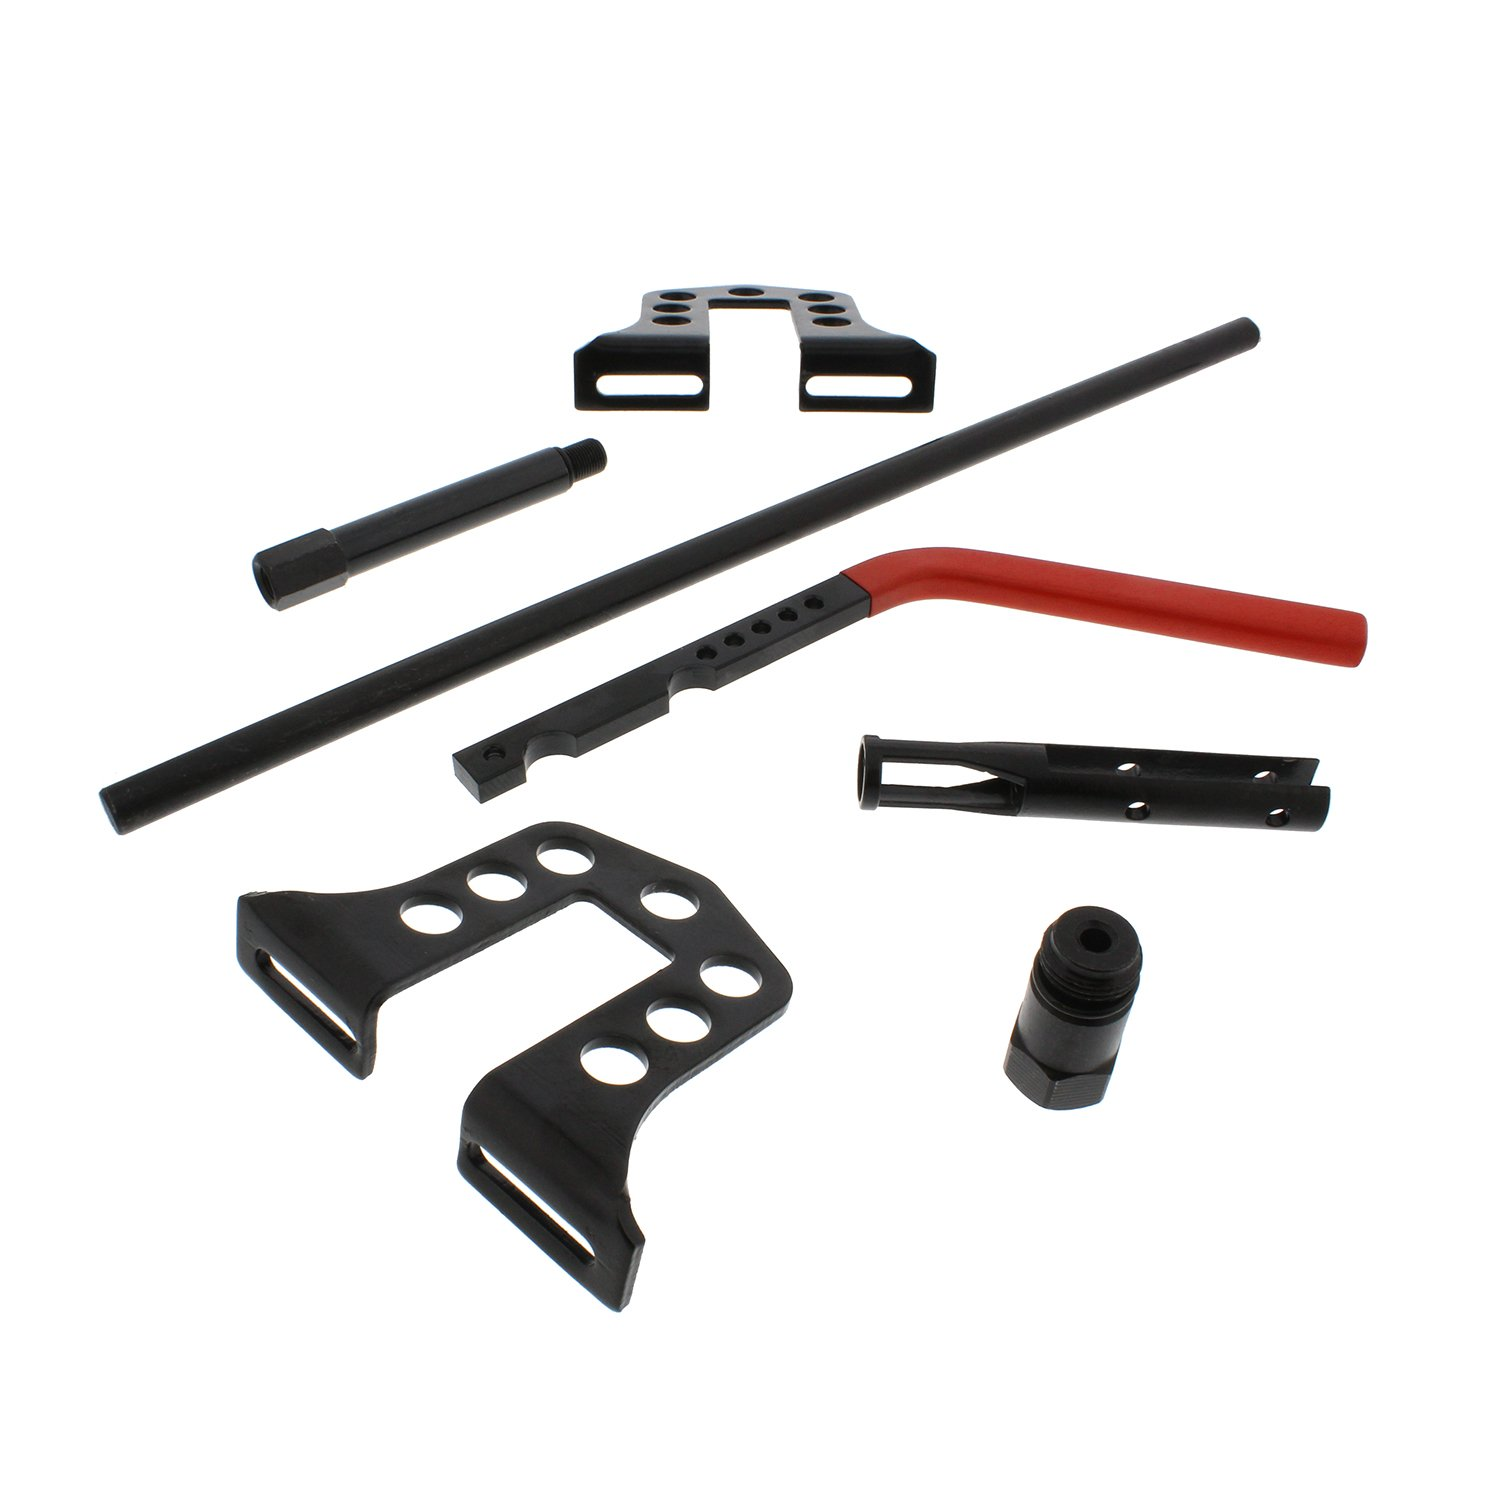 ABN Automotive Engine Overhead Valve Spring Tool Set – Remover, Installer, Compressor Kit for Ford, BMW, Honda, Toyota, VW by ABN (Image #2)